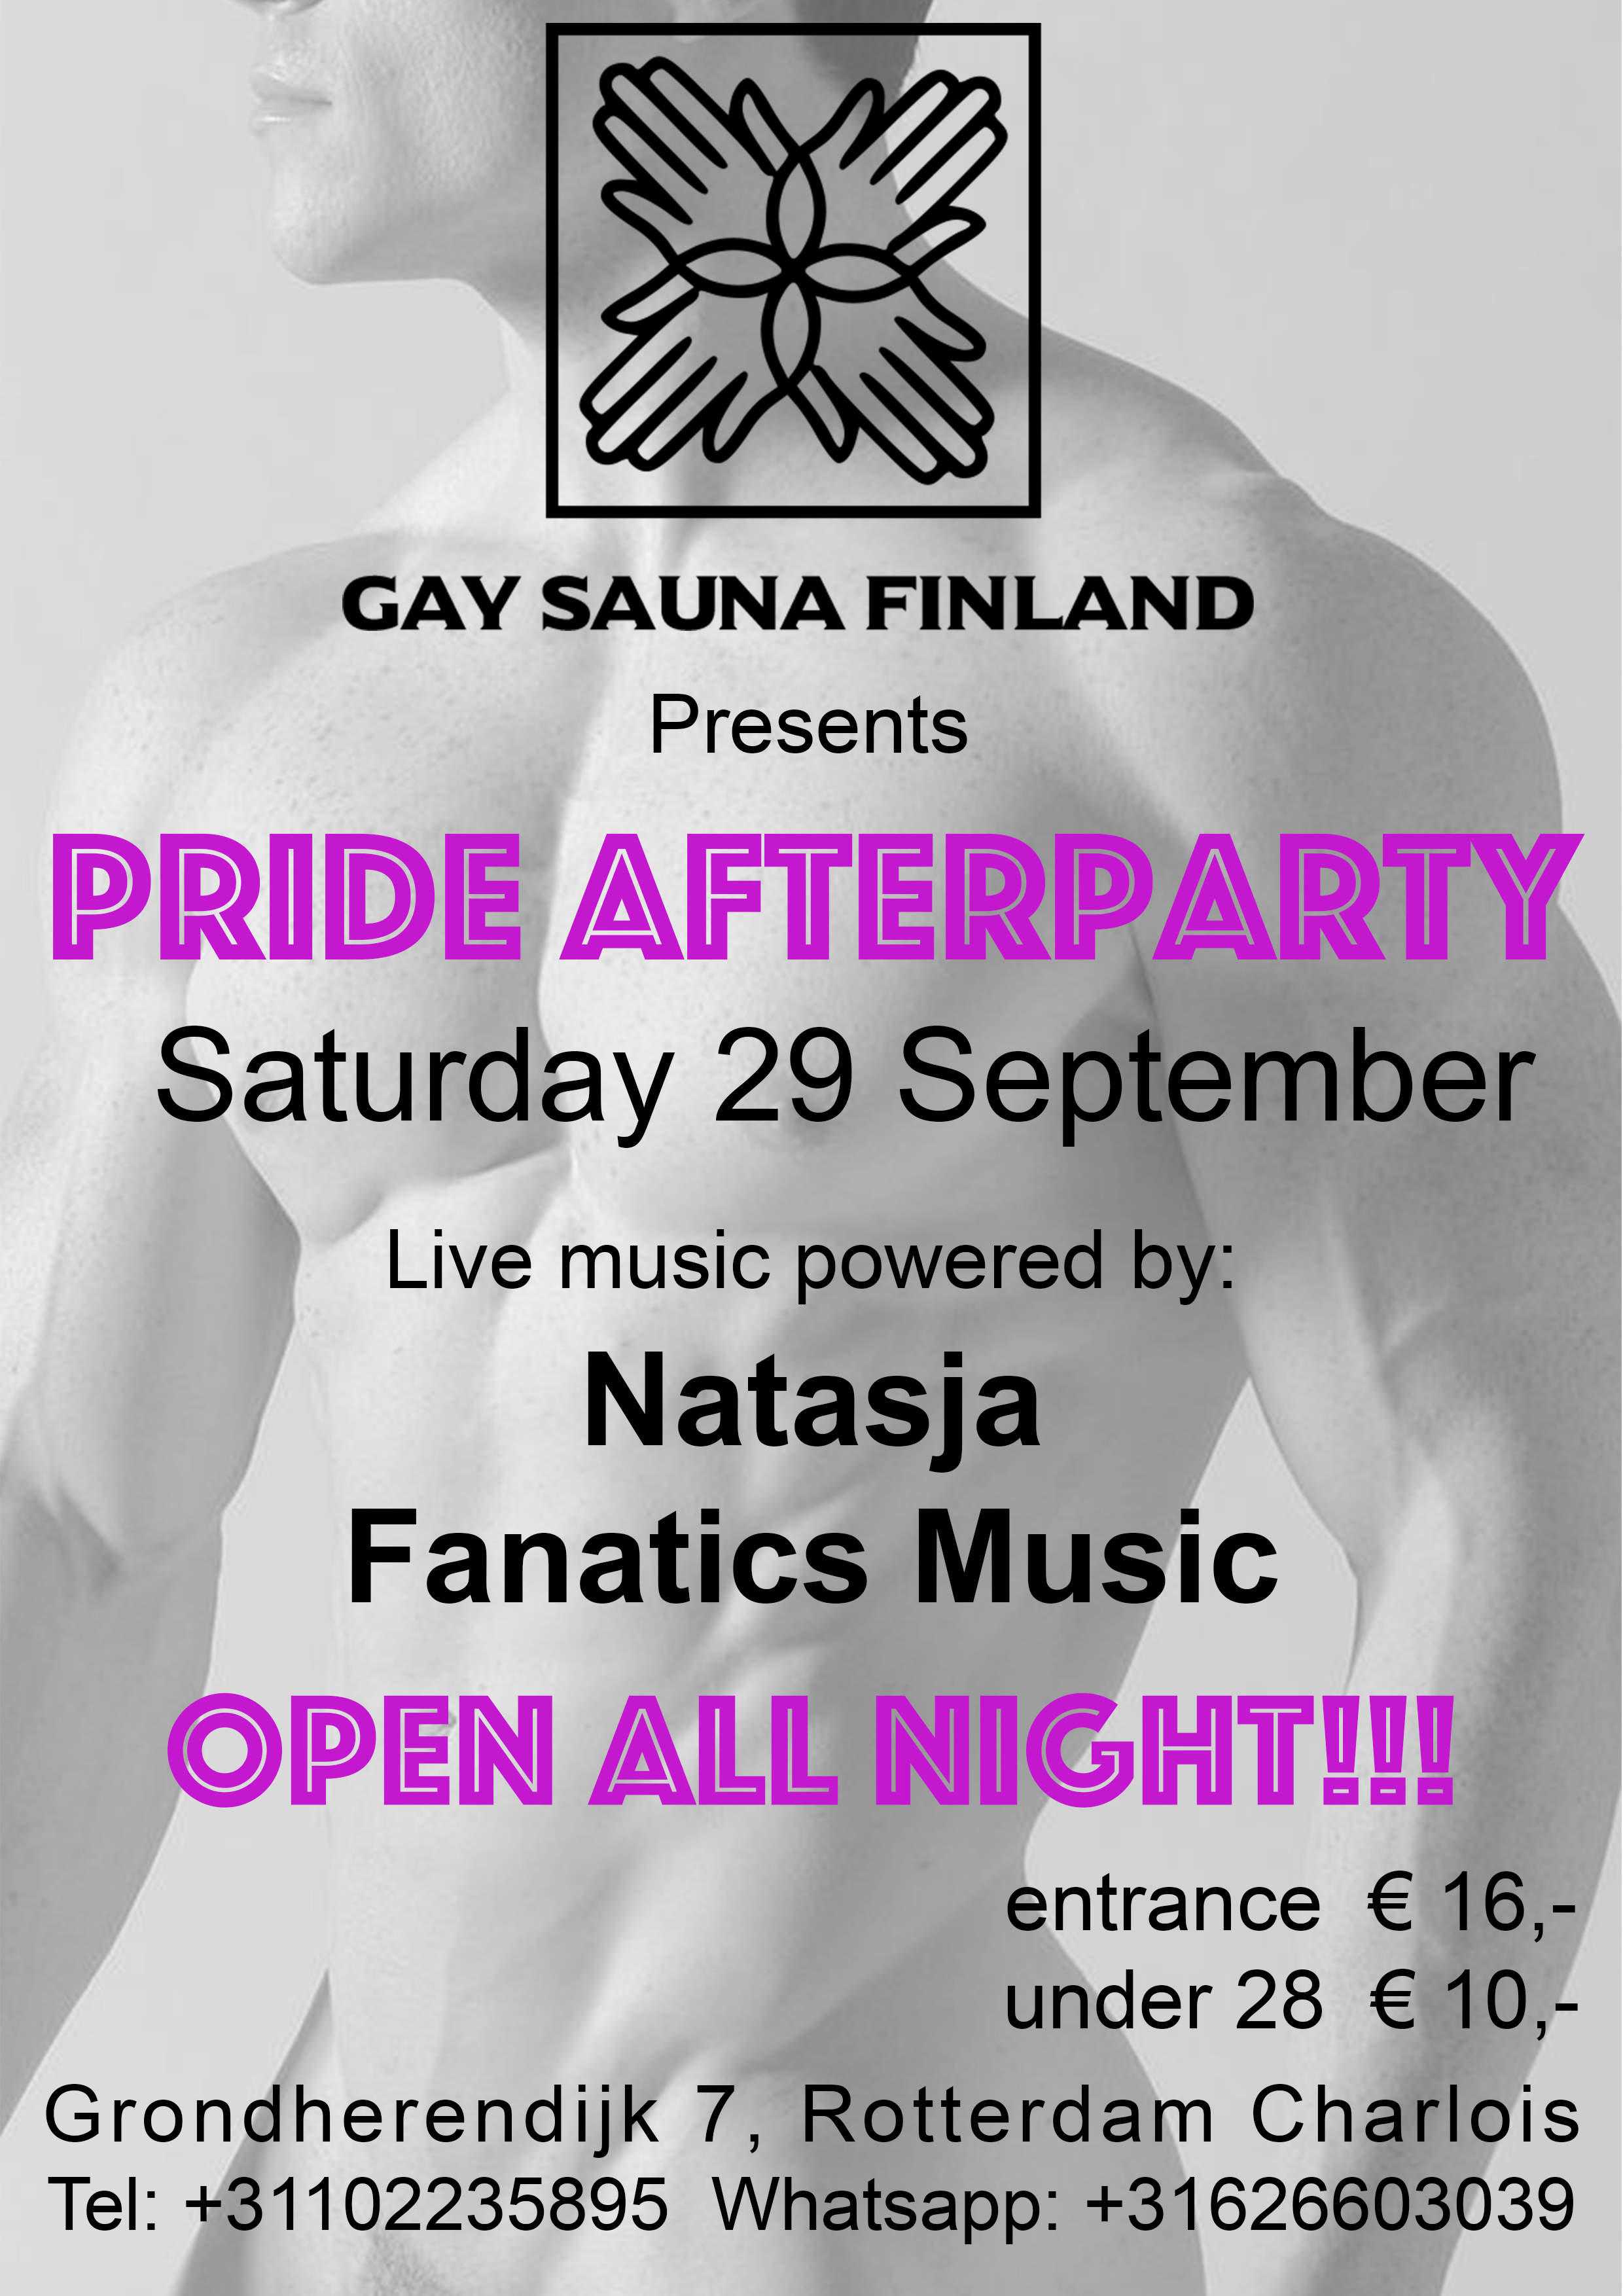 PRIDE AFTERPARTY 2018